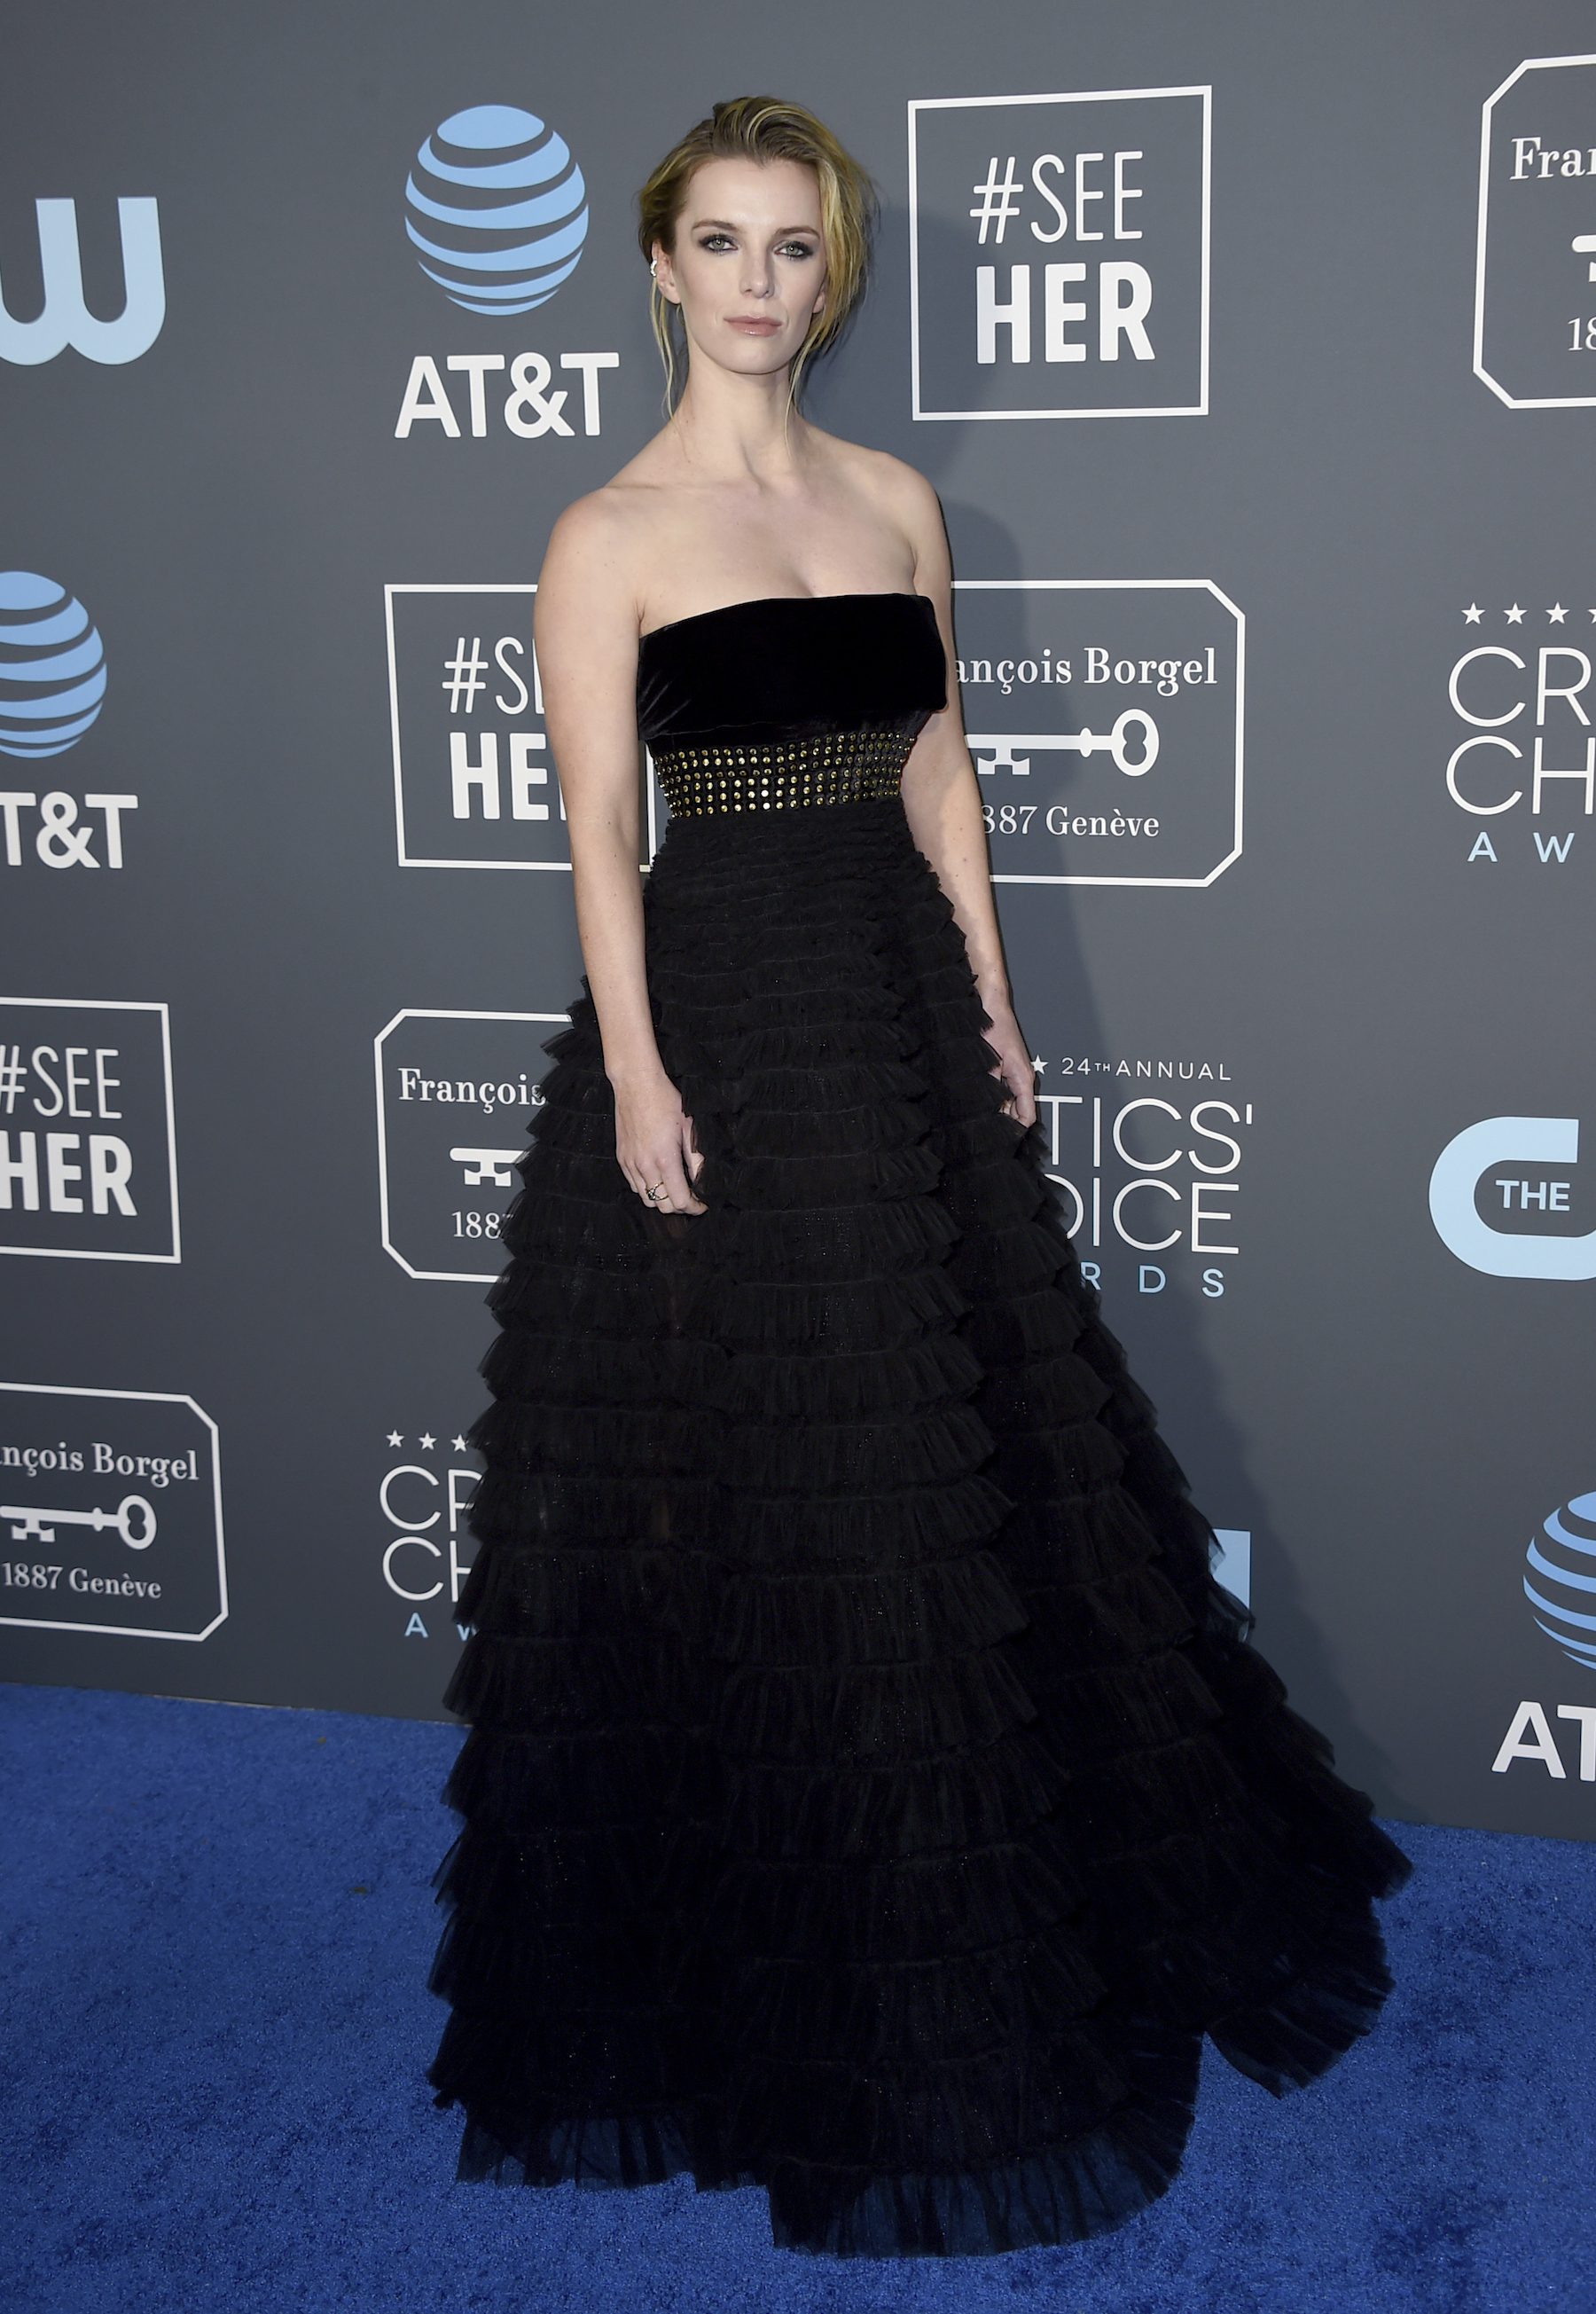 "<div class=""meta image-caption""><div class=""origin-logo origin-image ap""><span>AP</span></div><span class=""caption-text"">Betty Gilpin arrives at the 24th annual Critics' Choice Awards on Sunday, Jan. 13, 2019, at the Barker Hangar in Santa Monica, Calif. (Jordan Strauss/Invision/AP)</span></div>"